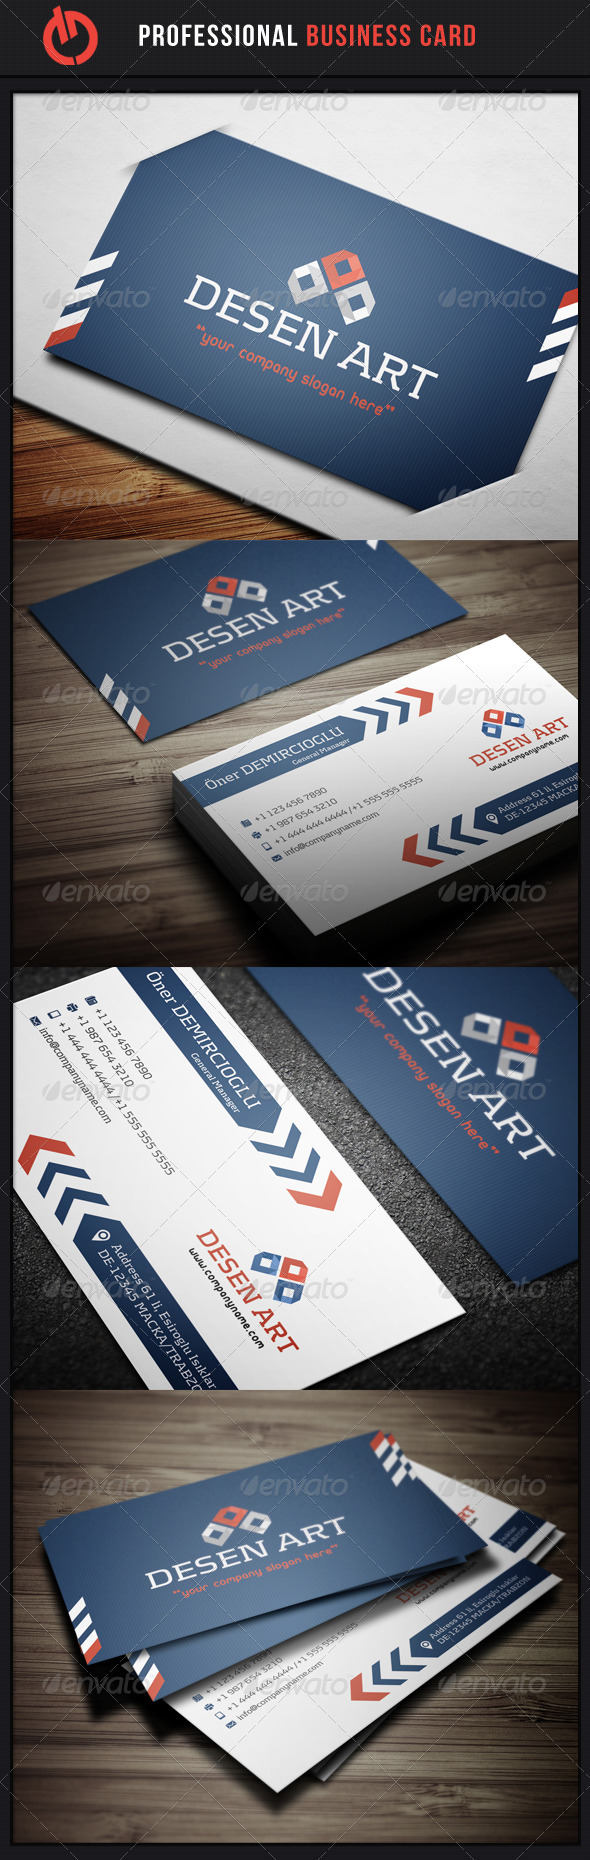 GraphicRiver Professional Business Card 7 3495899